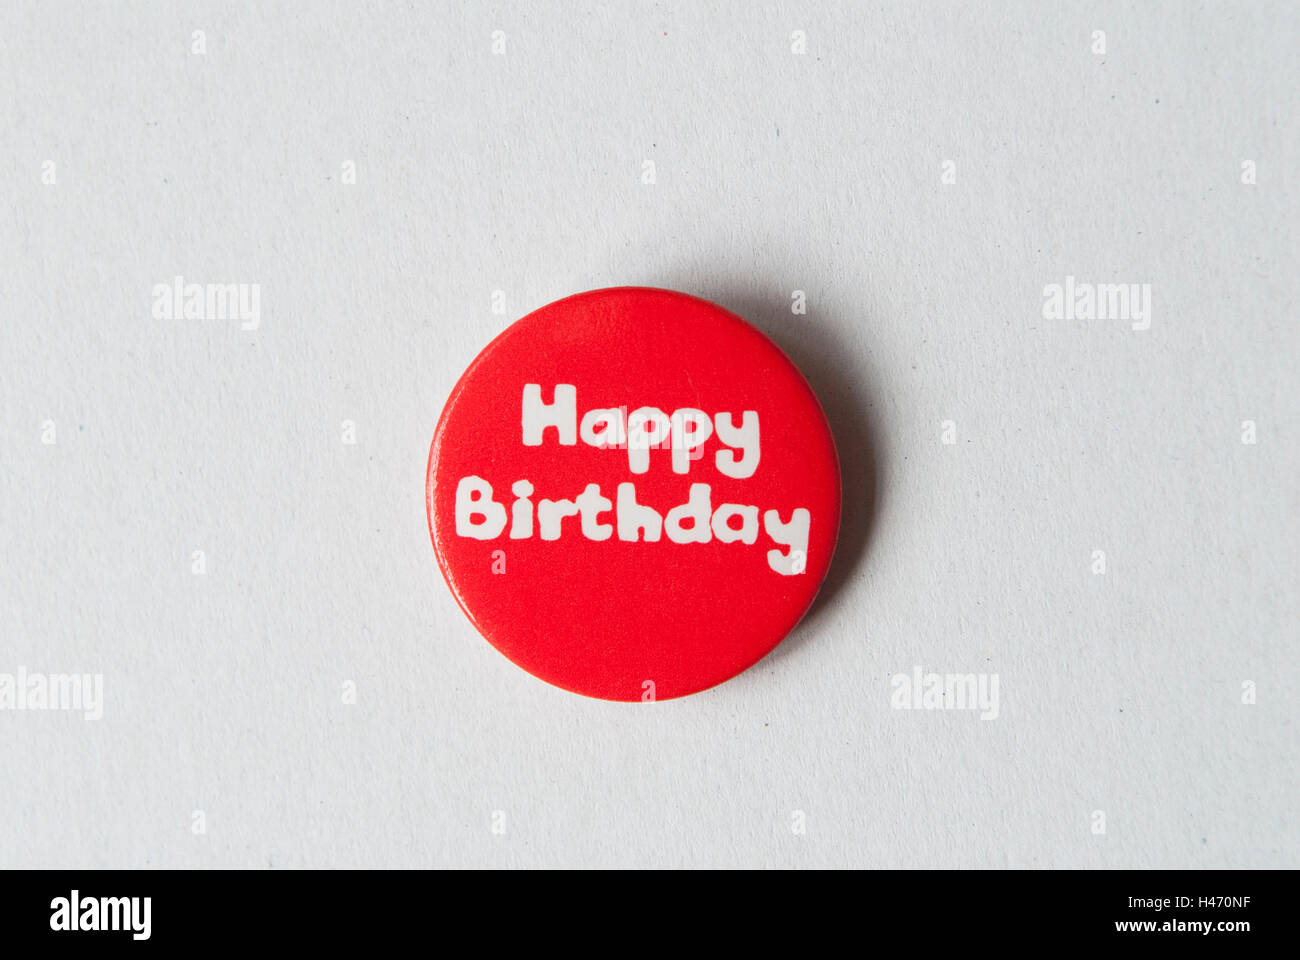 Happy birthday pin badge from either 1970s or 1980s HOMER SYKES - Stock Image